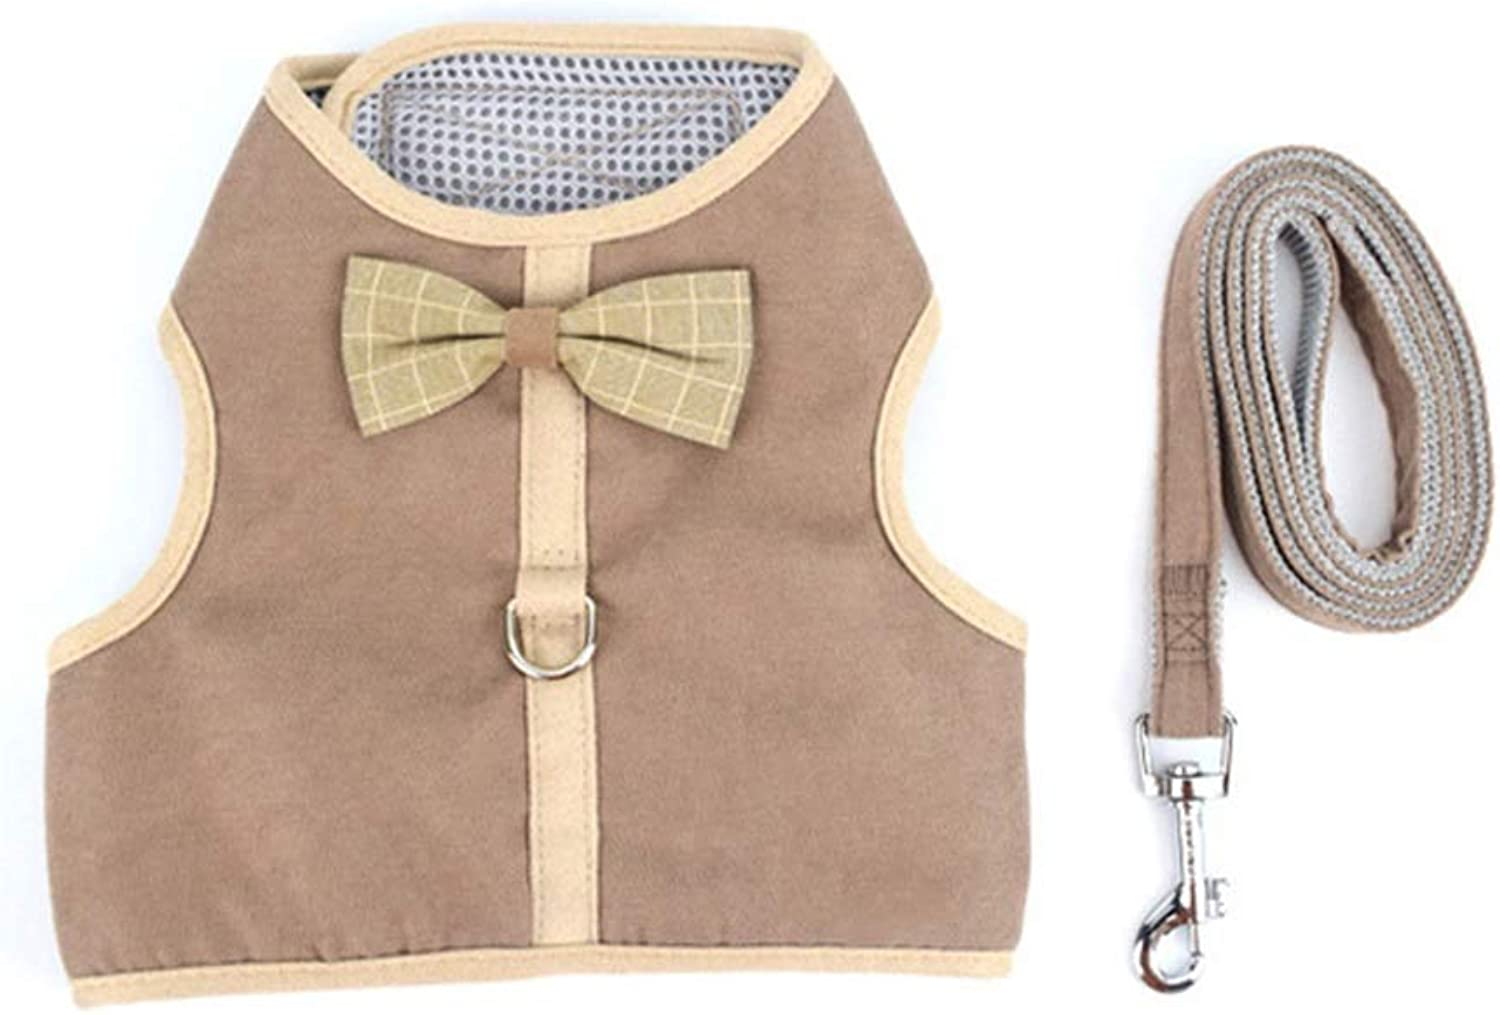 Dog Vest Harness, Chest Strap with Rope Training Or Walking Traction Chain Suitable for Puppy Teddy Cat Collars Leash Safety Buffer Harness (color   Coffee, Size   S)